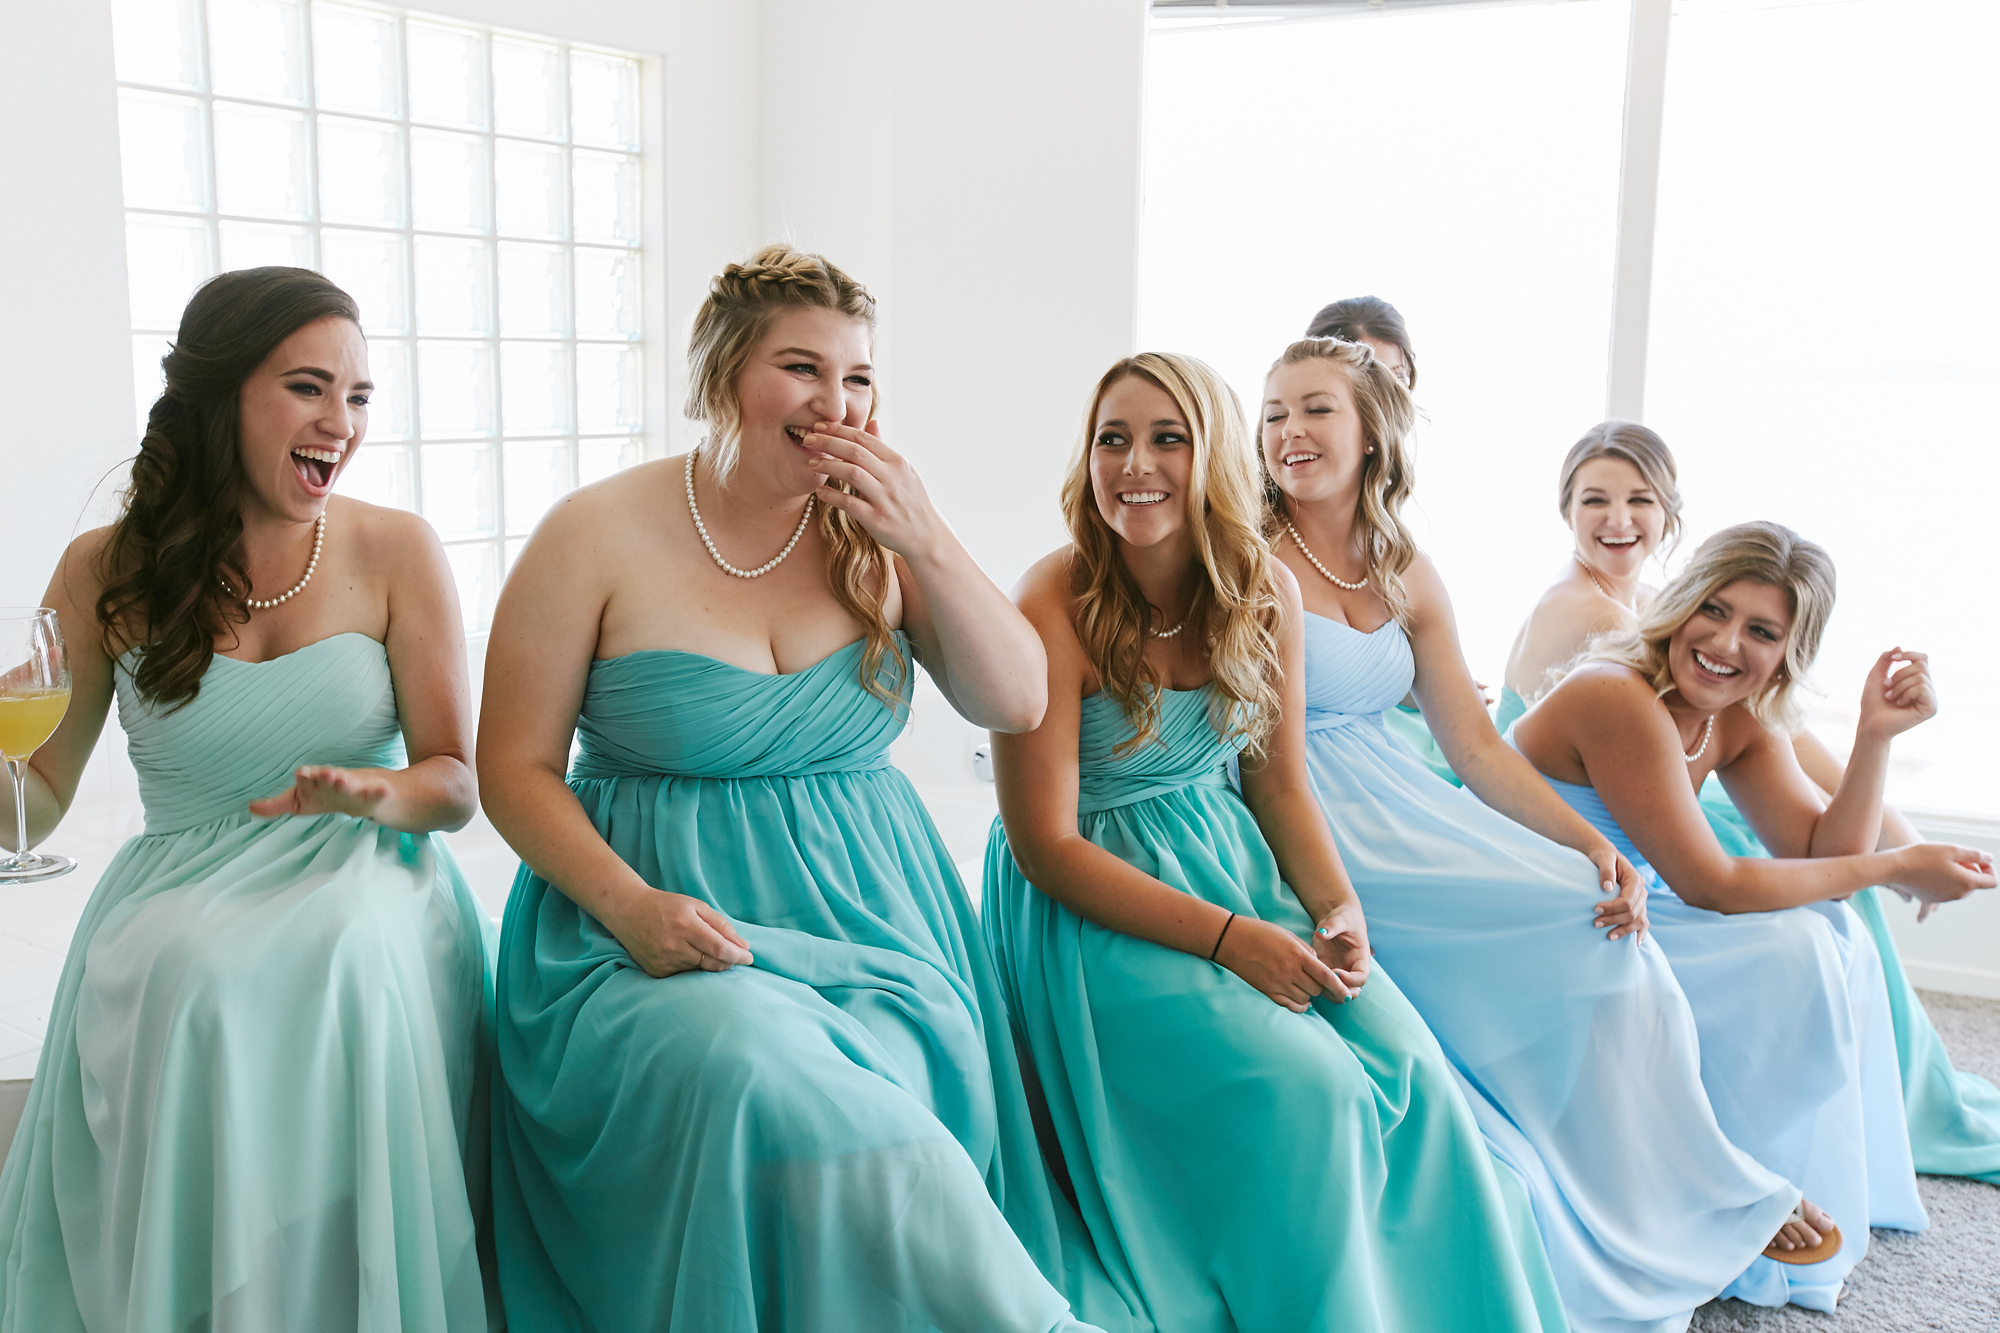 group of bridemaids